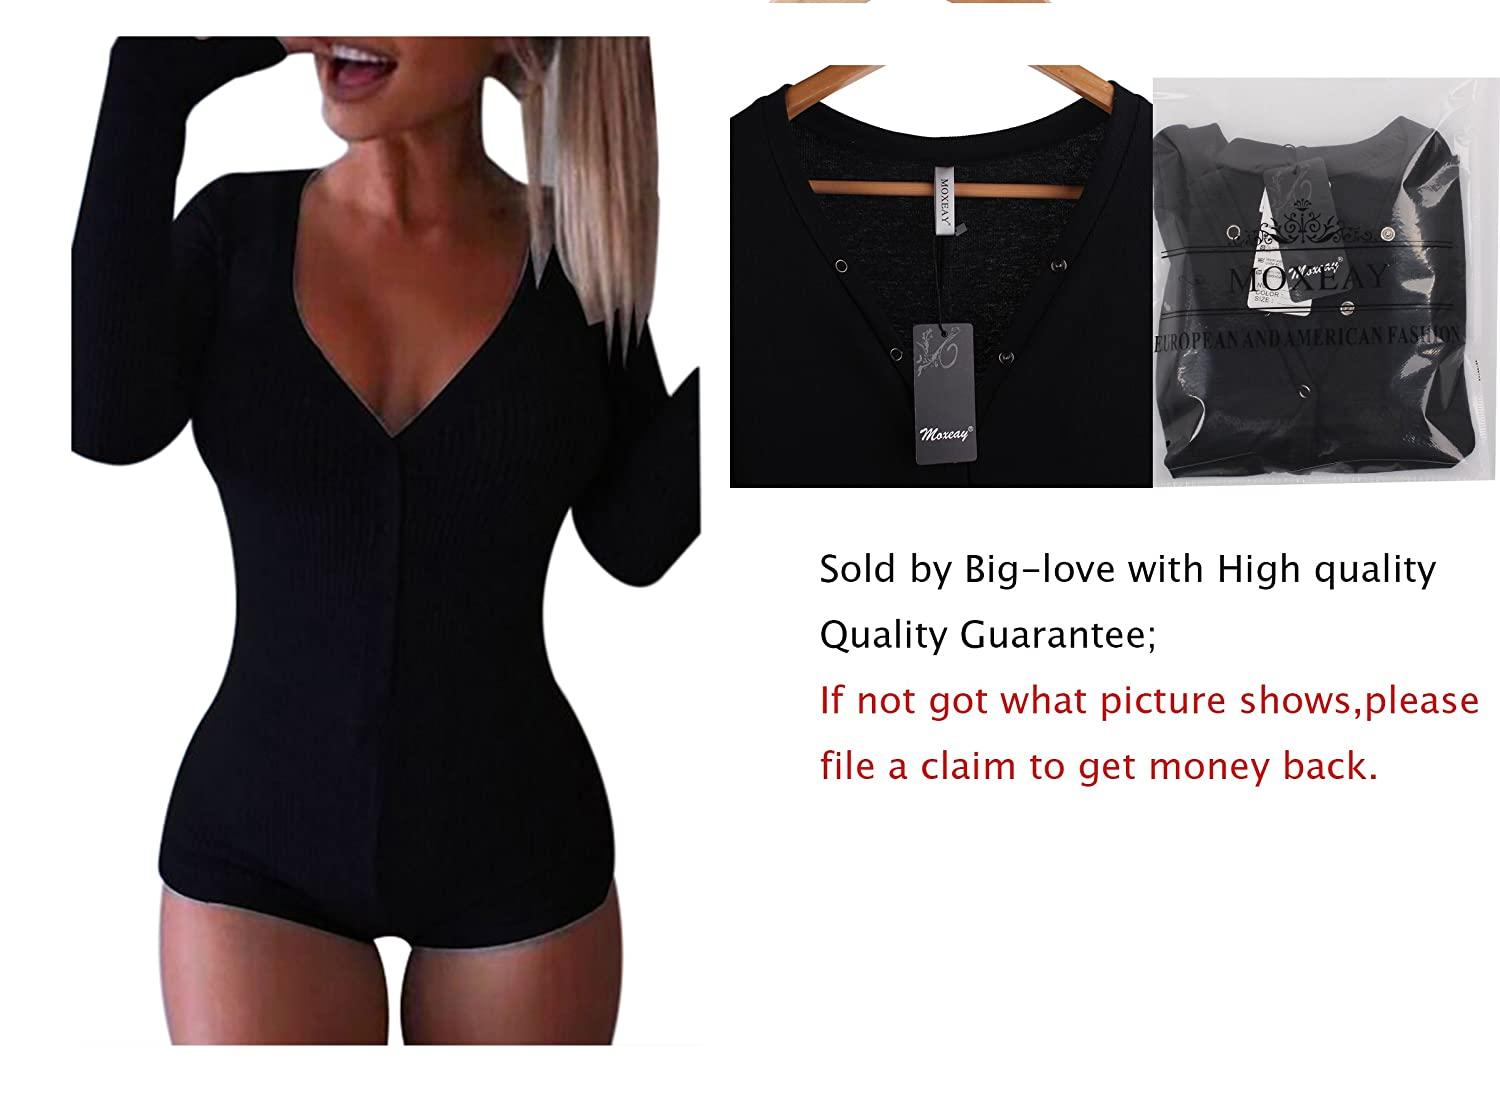 b8898fb9b V-Neck one piece bodysuit is sexy!Nobody and no body is perfect.This  smoothing